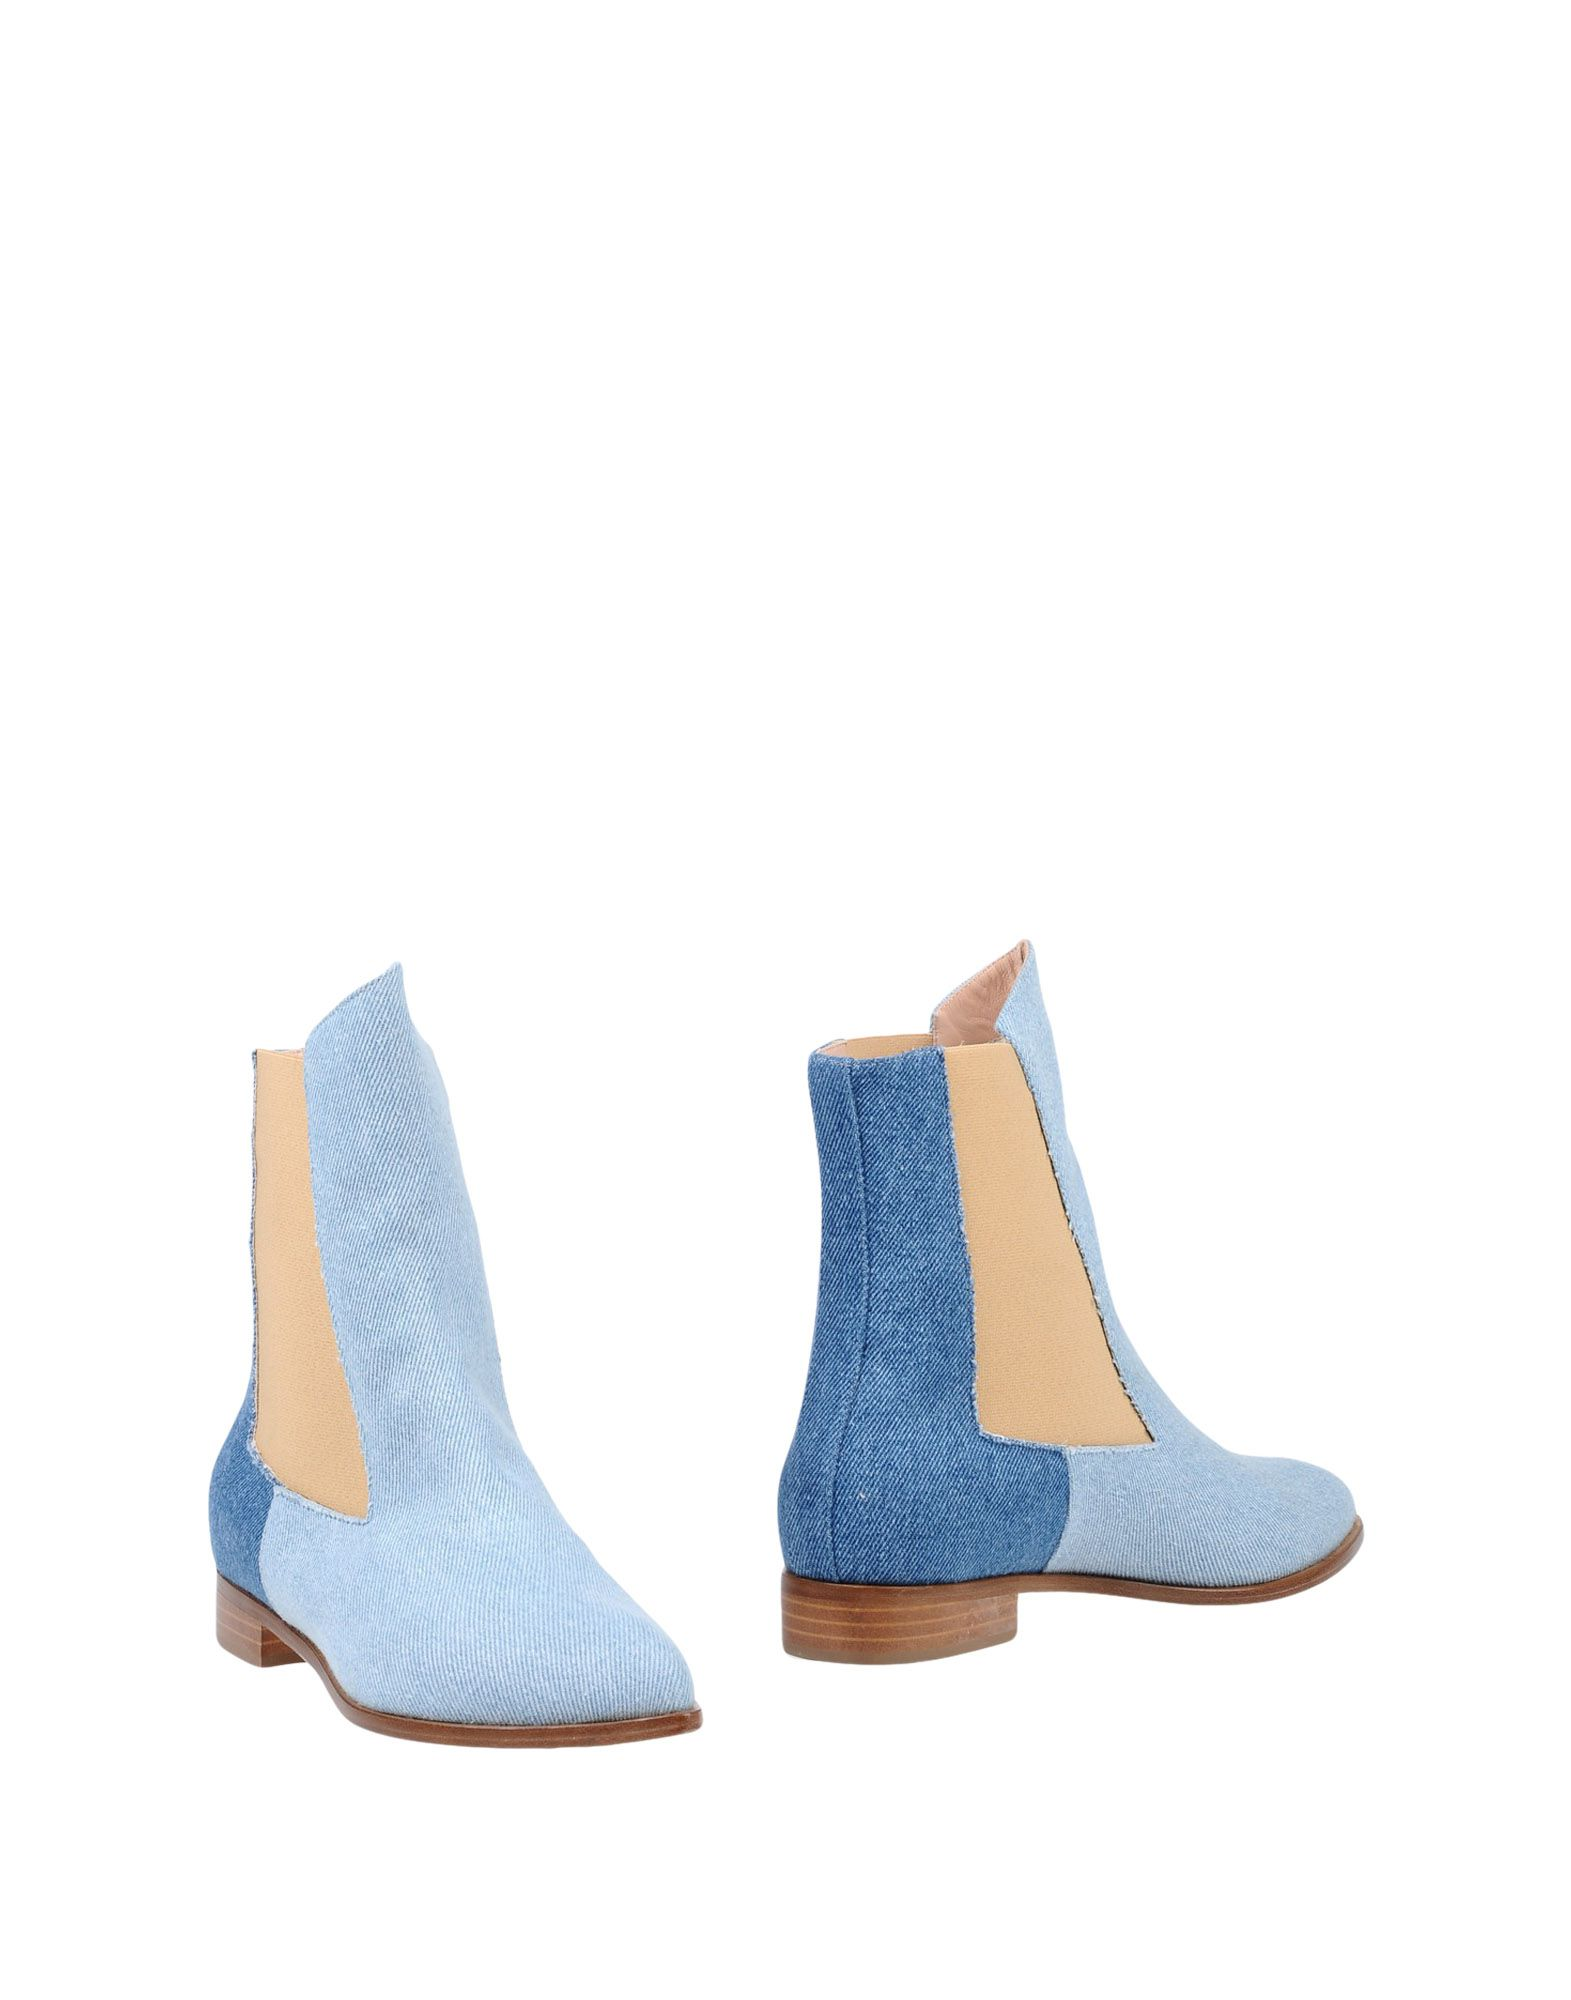 LAMPERTI MILANO Ankle Boots in Blue